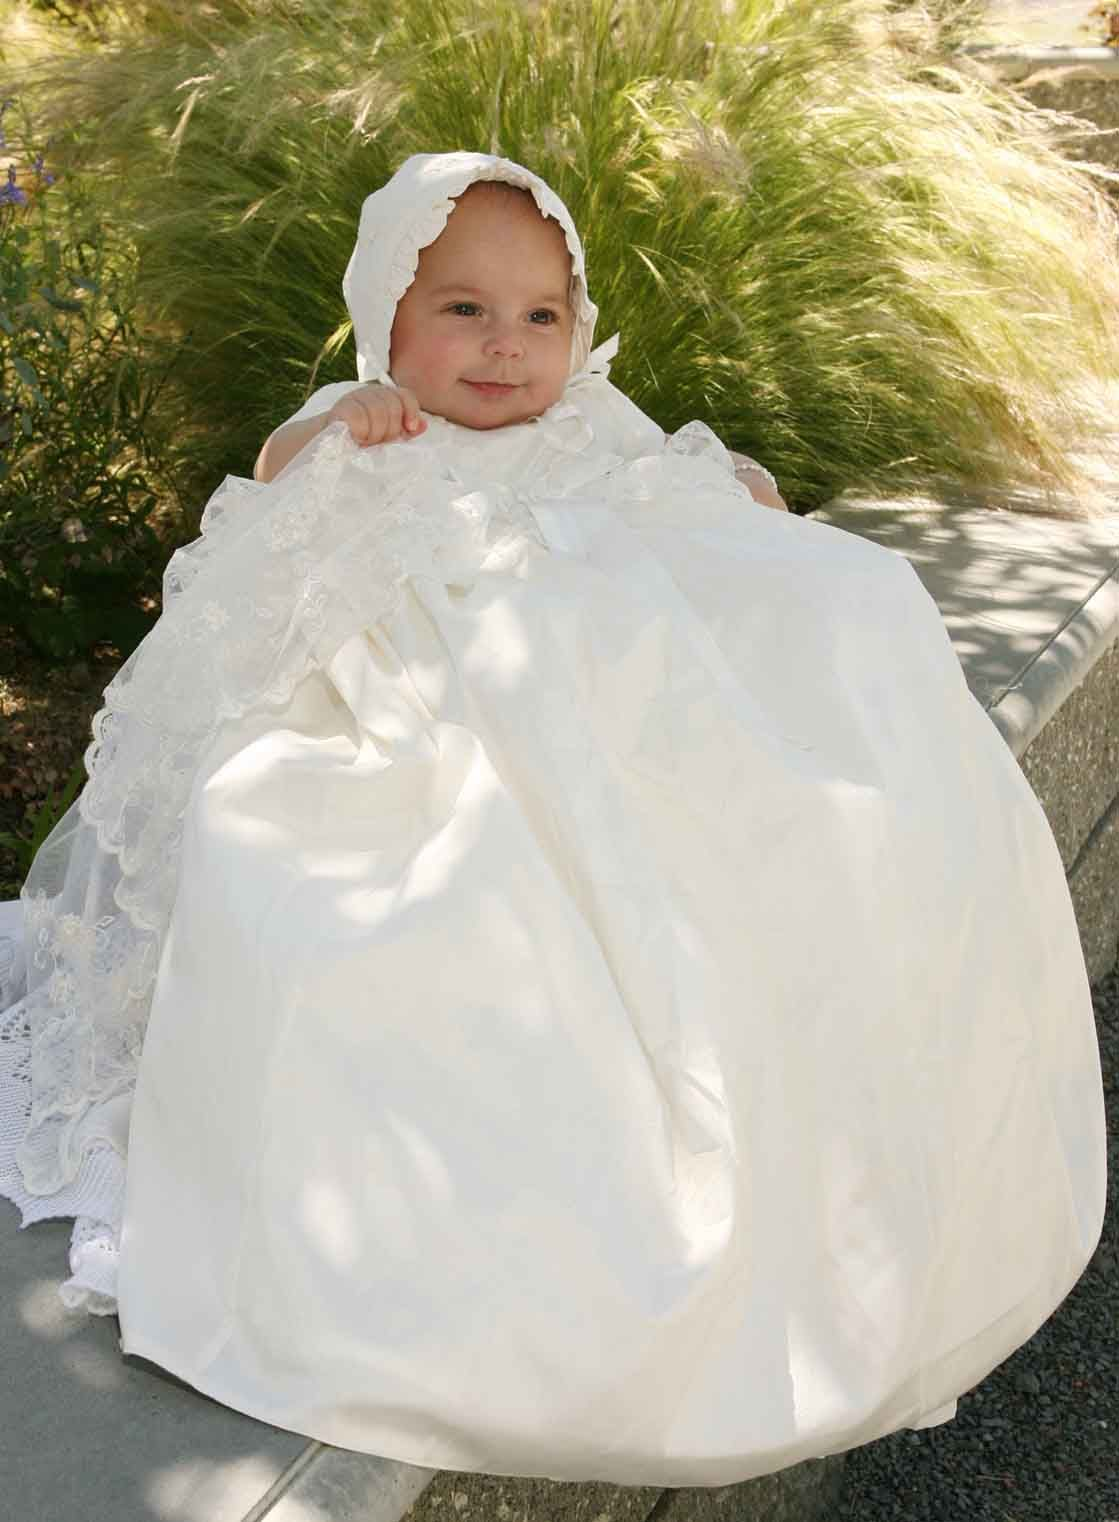 e71f28c42 NEW Sarah Louise Ivory Silk Christening Gown with Exquisitely Embroidered  Overlay (CR0911) from www.grammies-attic #ChristeningGown